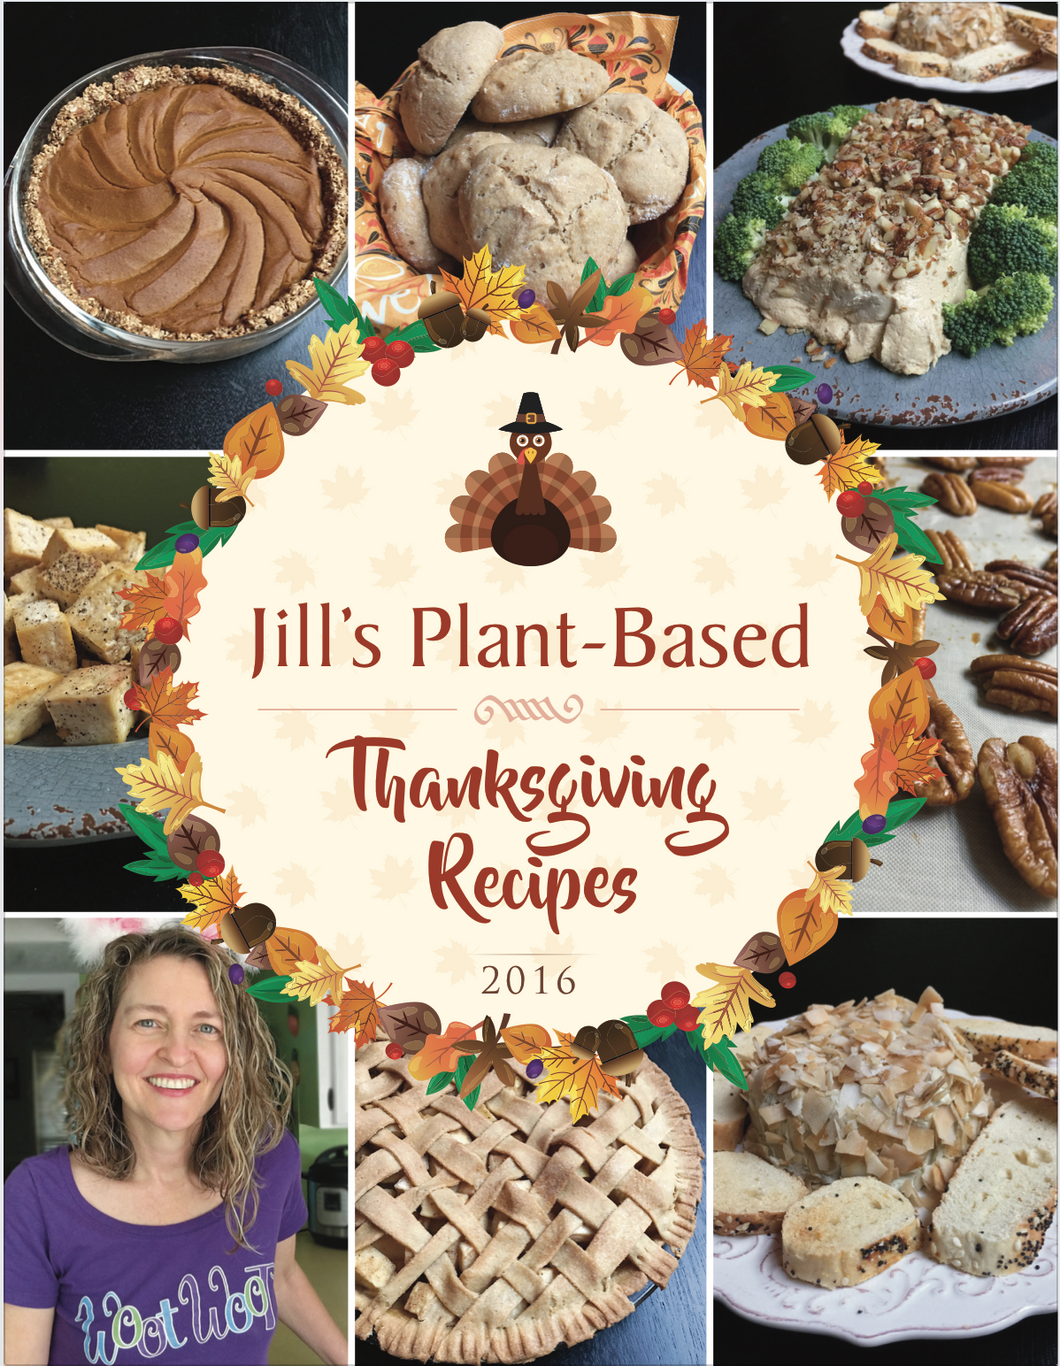 Jill's Plant-Based Thanksgiving Recipes 2016